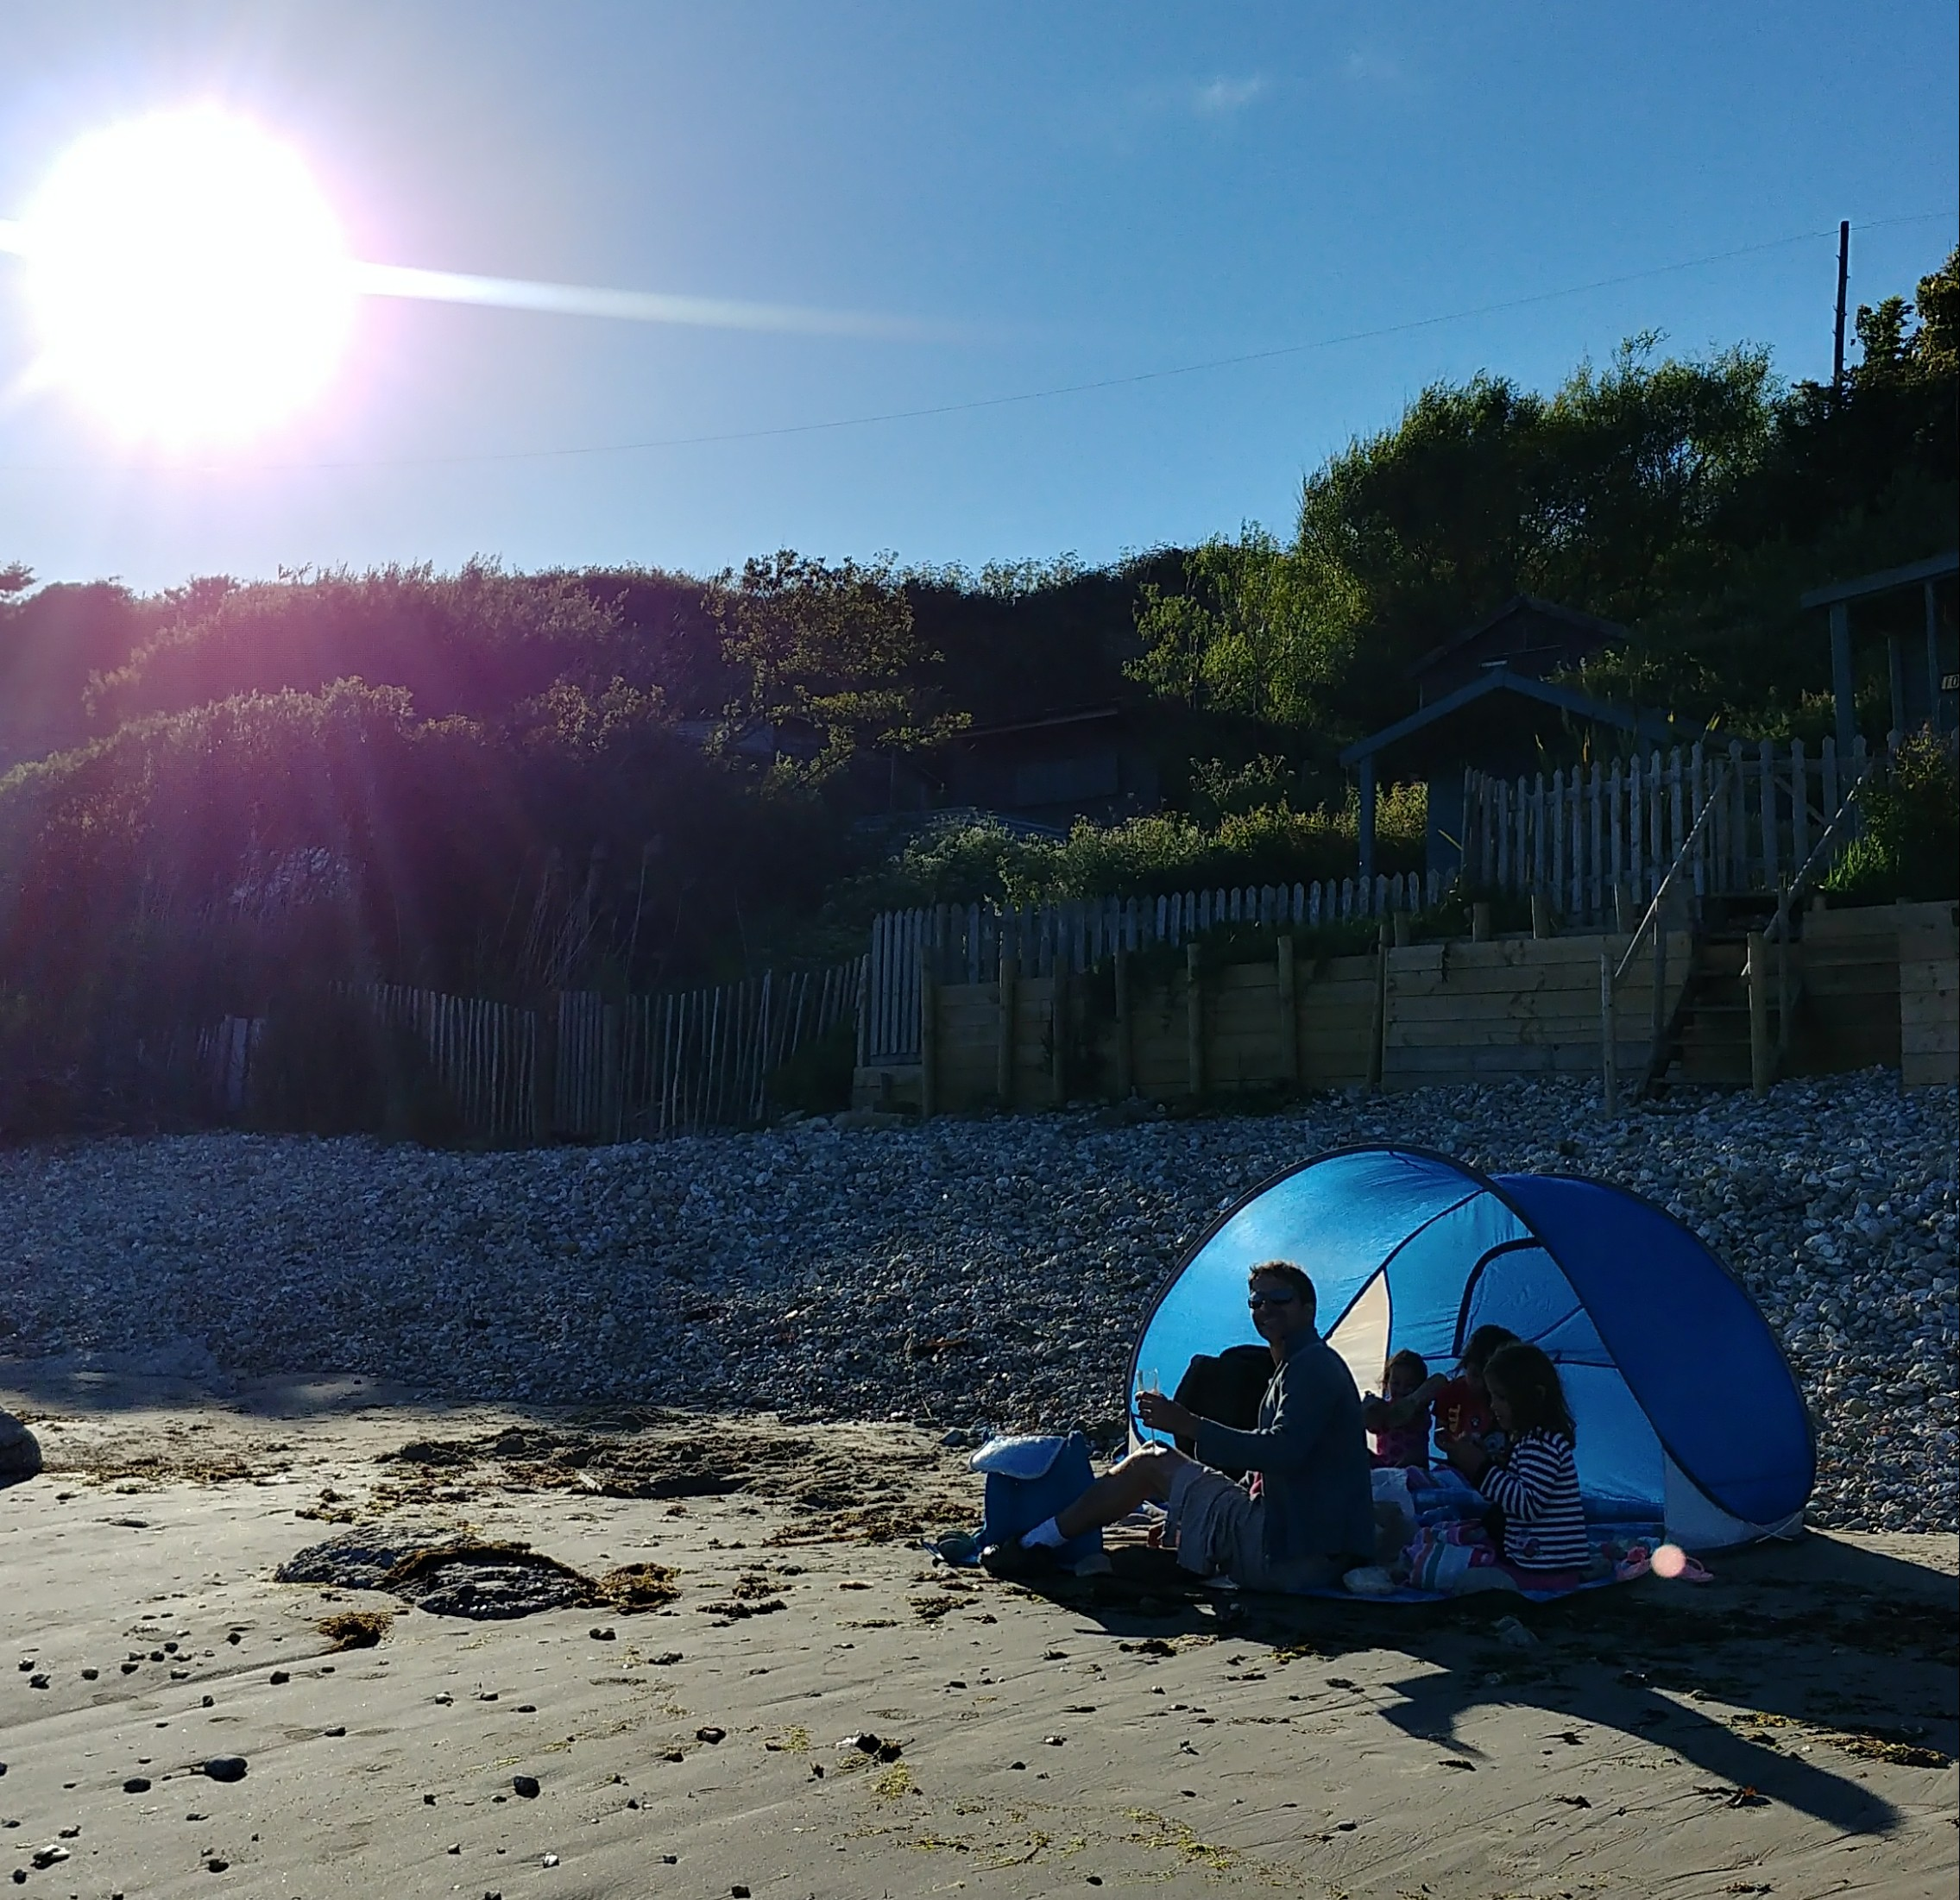 Fish, chips and prosecco on Forelands beach at sunset.